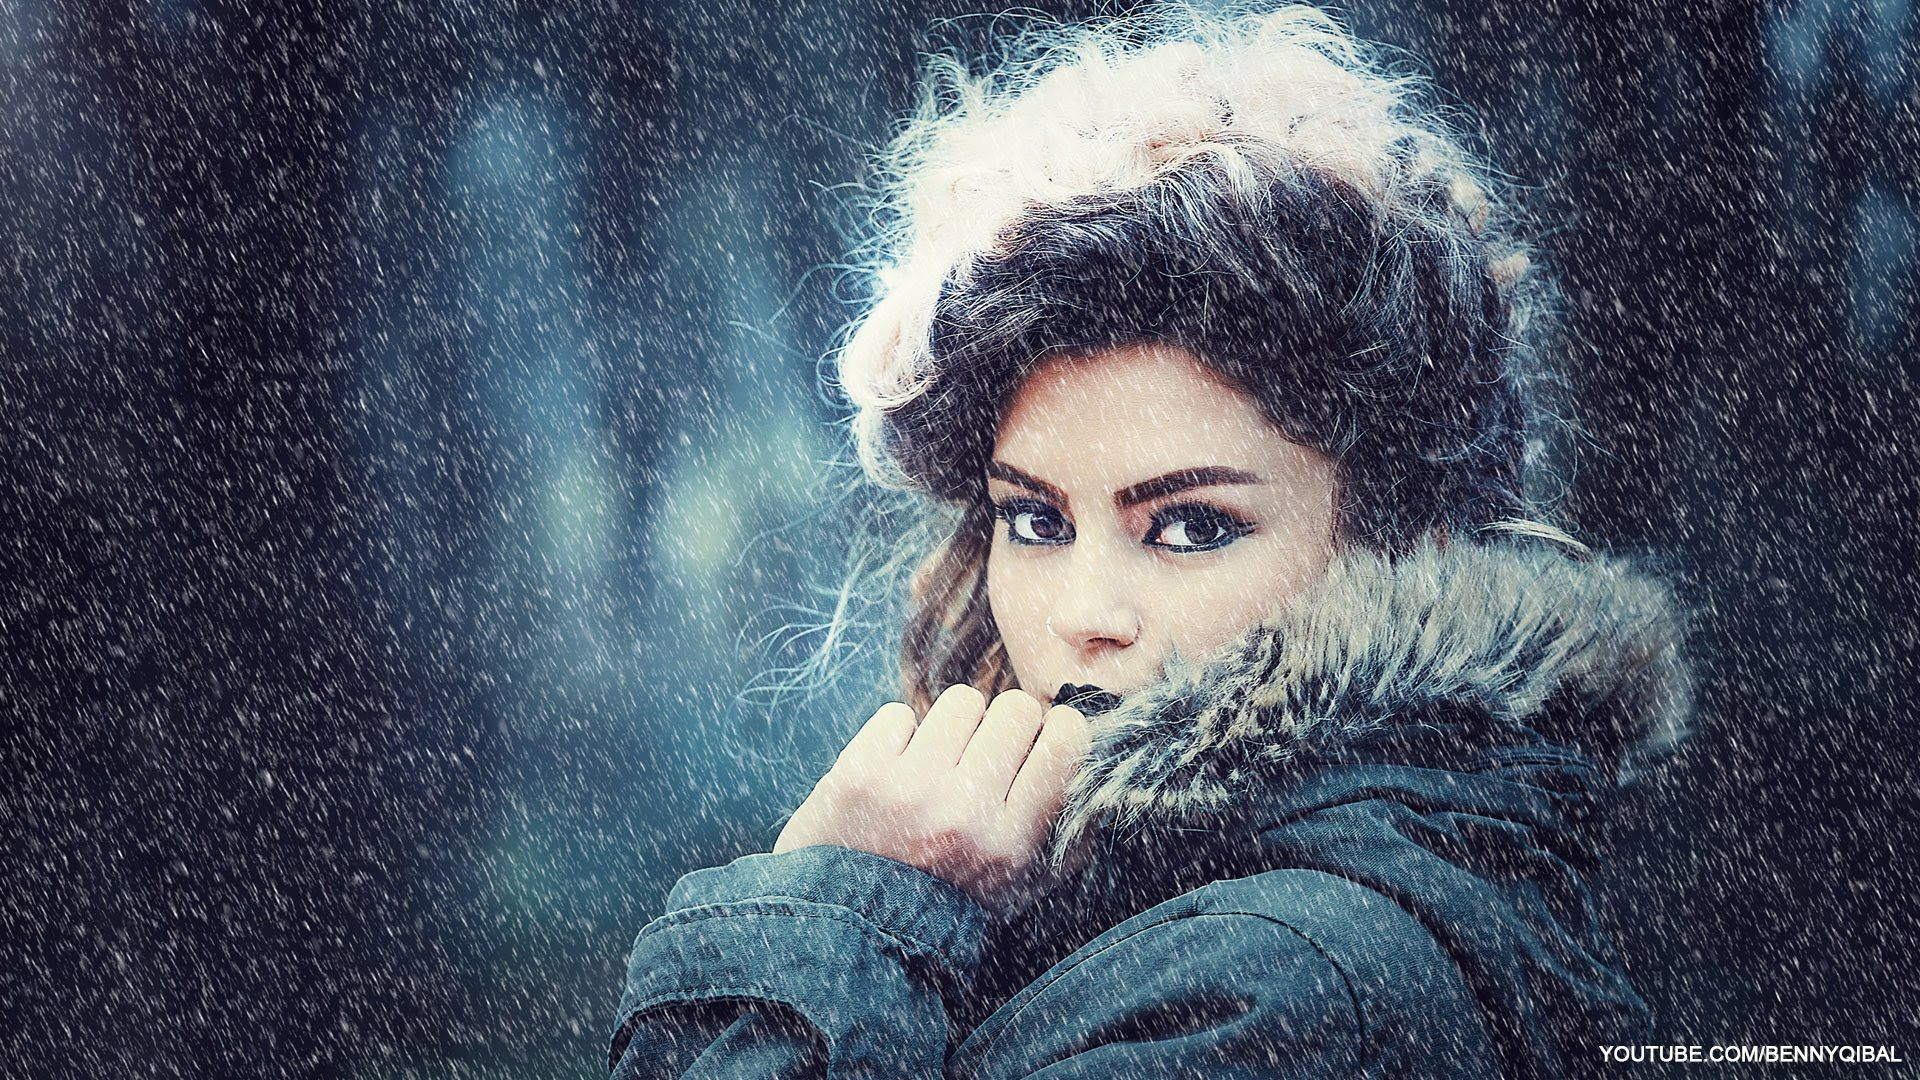 Snow falling effect photoshop tutorial picture ideas pinterest snow falling effect photoshop tutorial baditri Choice Image